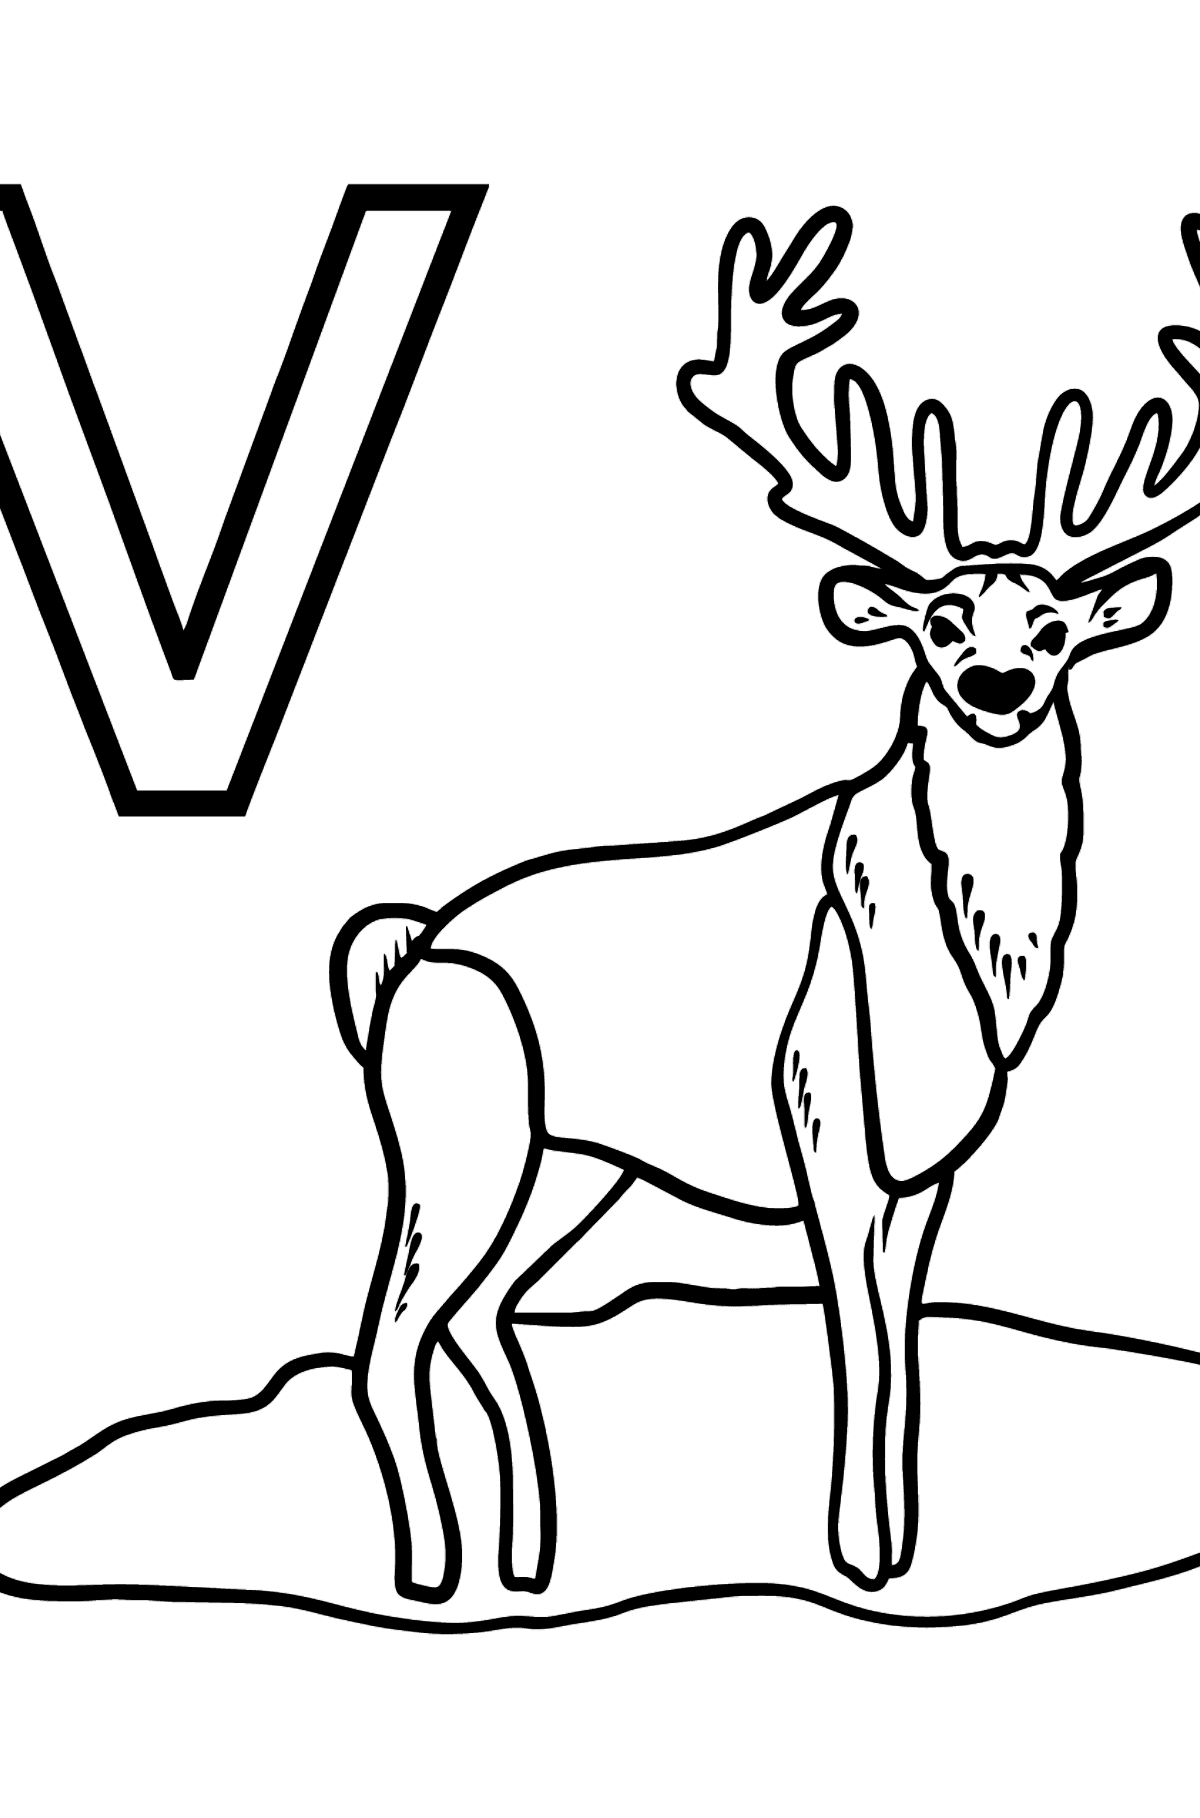 Portuguese Letter V coloring pages - VEADO - Coloring Pages for Kids